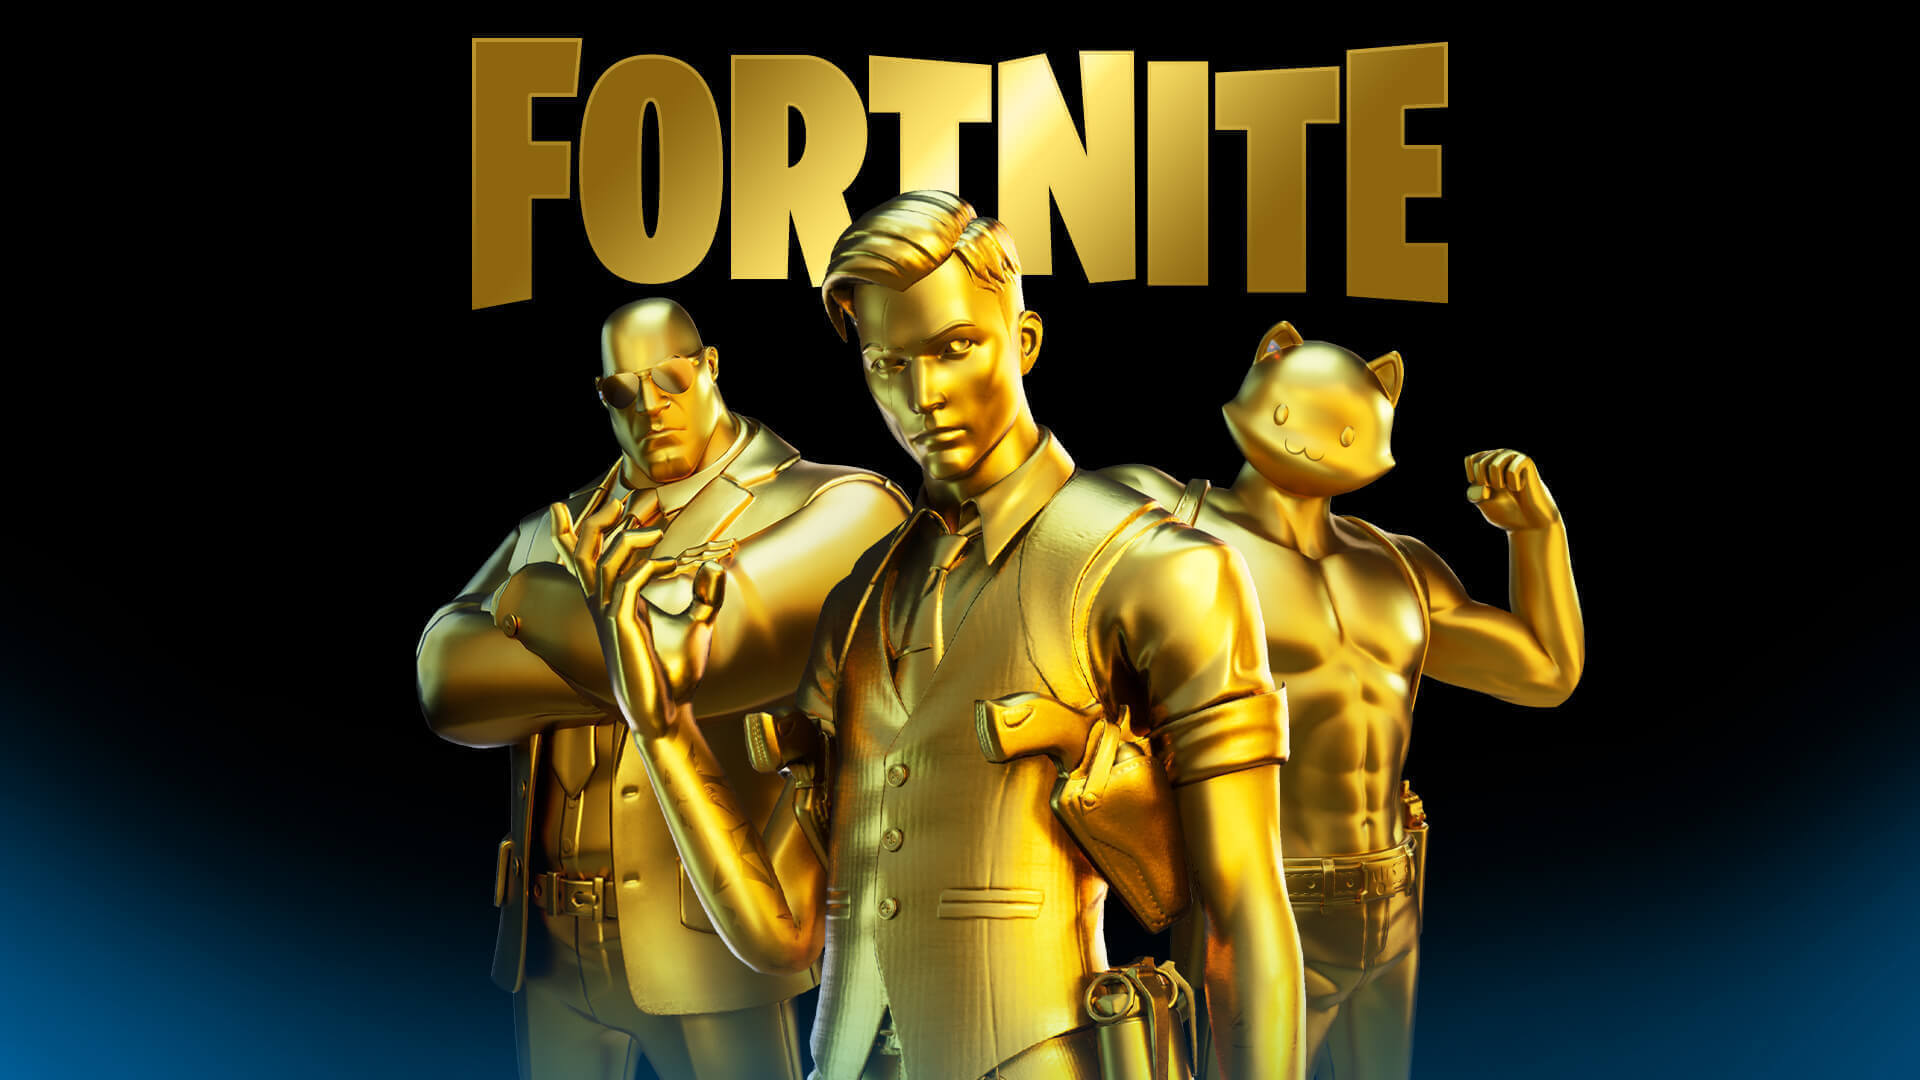 Fortnite Season 2 extended by one month